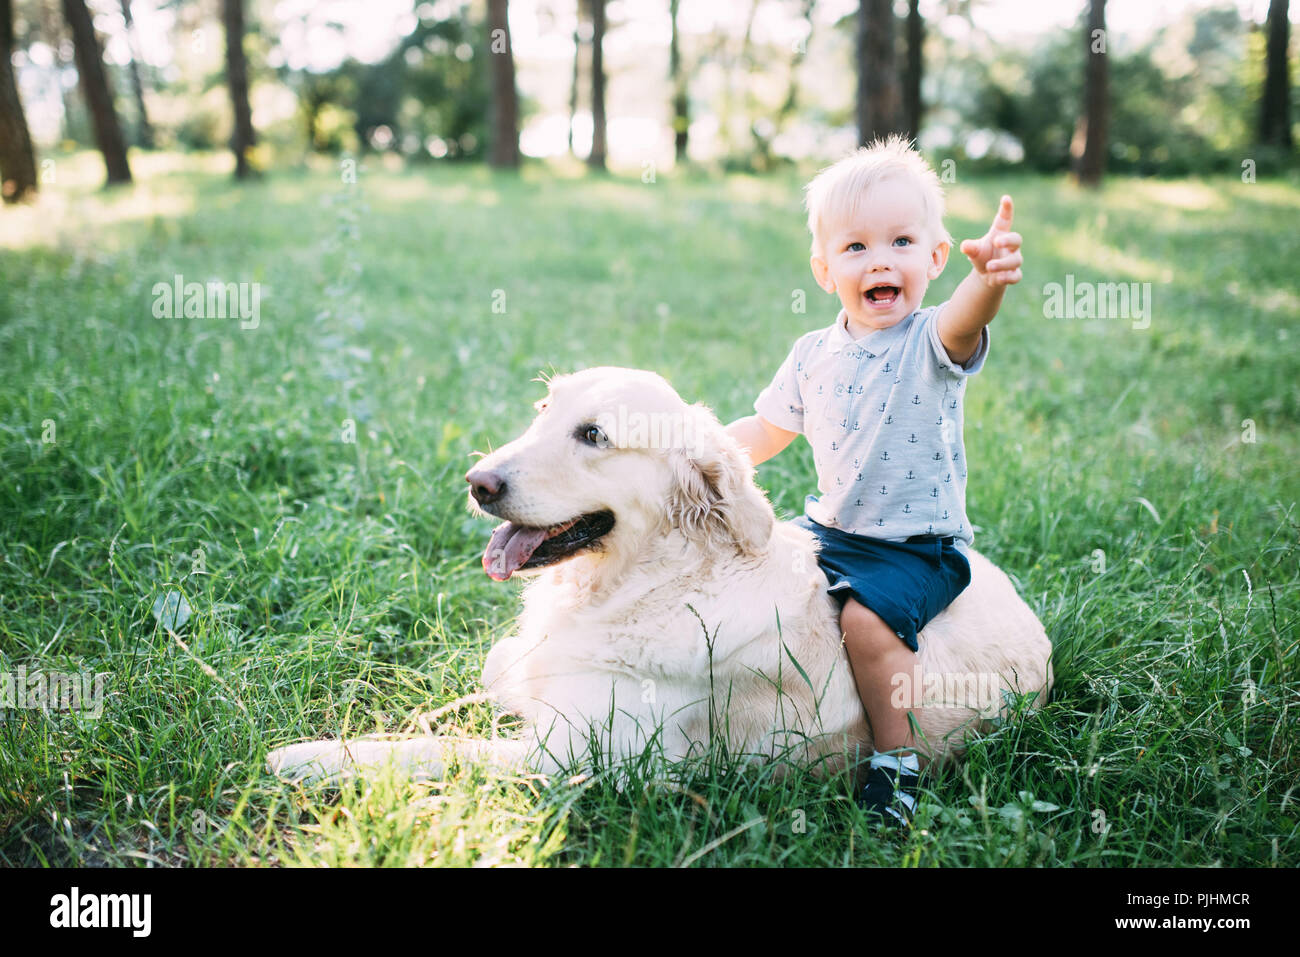 Little child playing with Labrador retriever dog together in wood - Stock Image